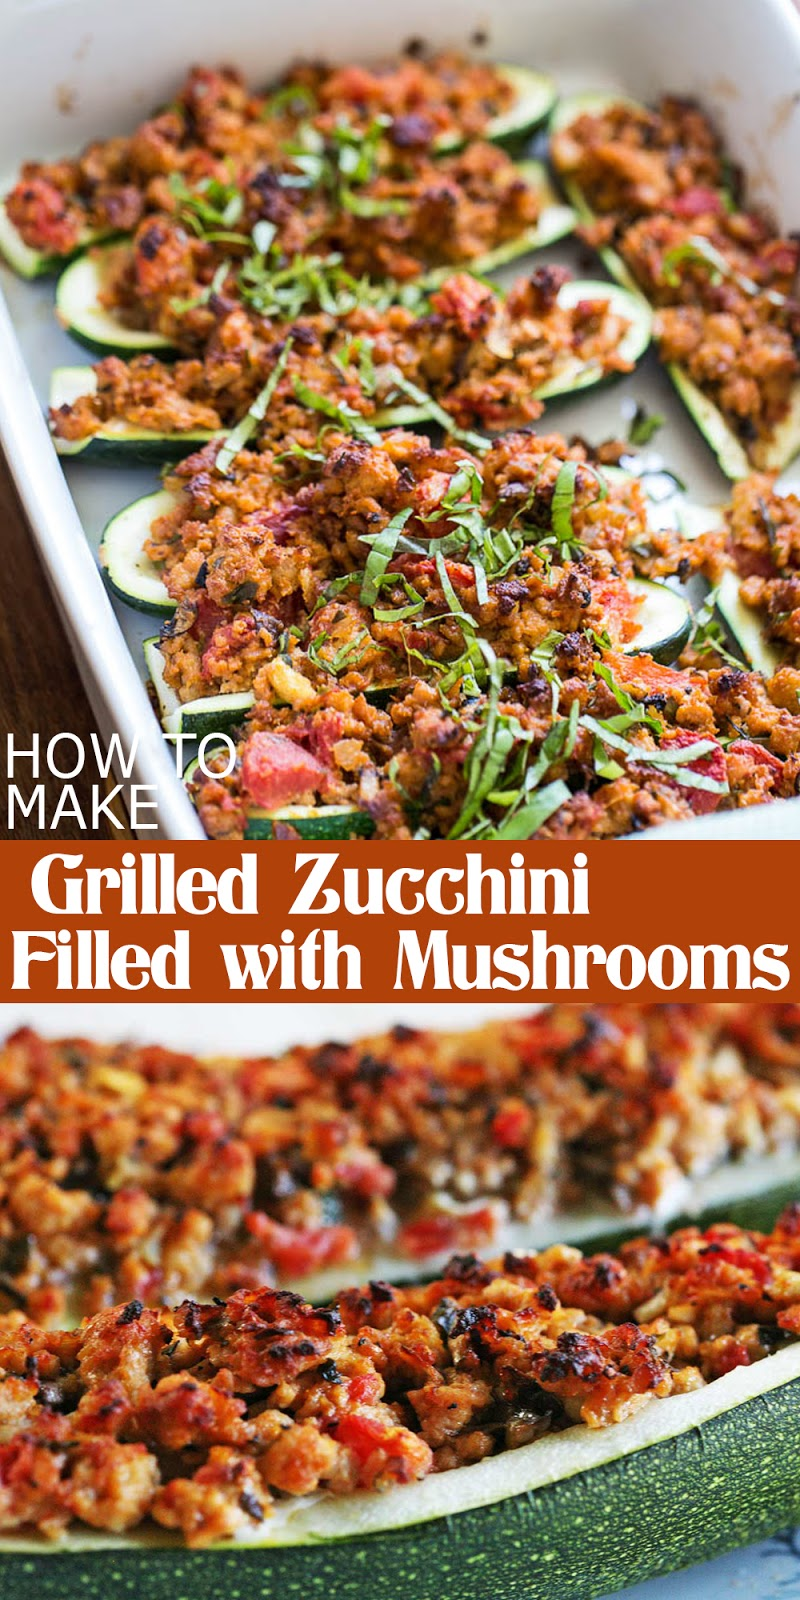 GRILLED ZUCCHINI FILLED WITH MUSHROOMS